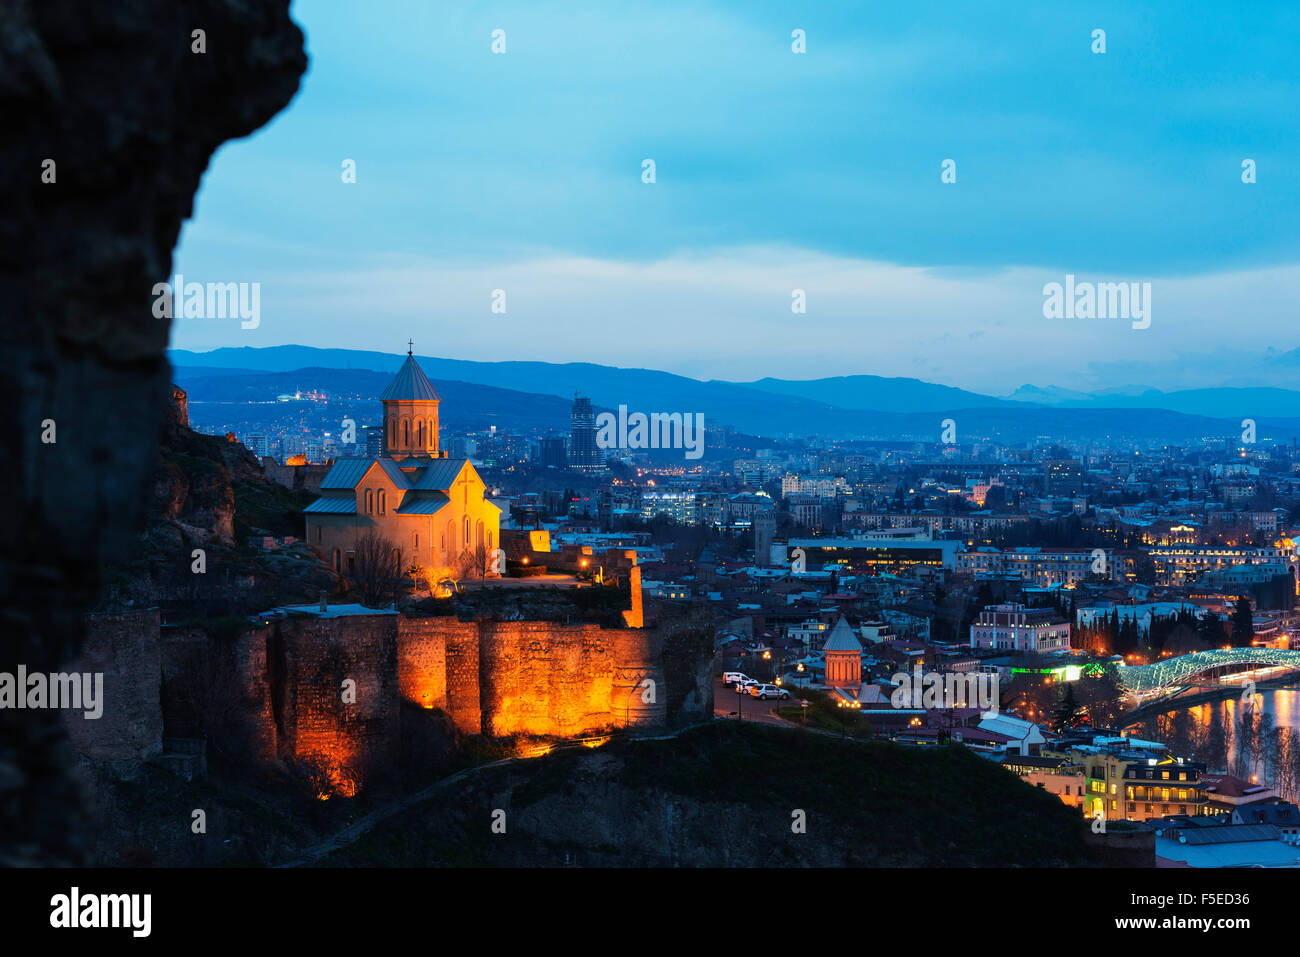 St. Nicholas church on top of Narikala Fortress, Tbilisi, Georgia, Caucasus, Central Asia, Asia - Stock Image